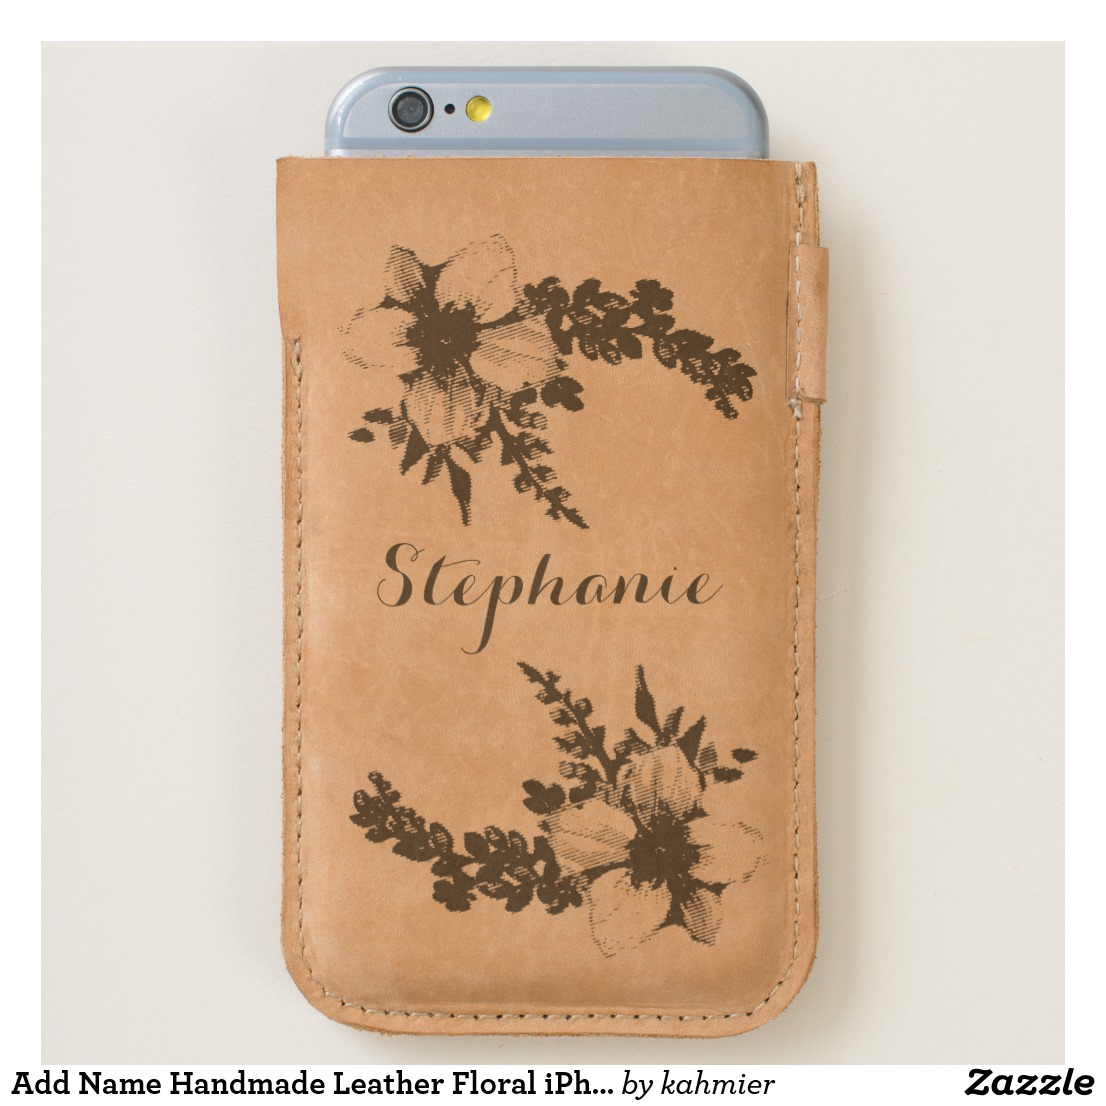 Add Name Handmade Leather Floral iPhone Case